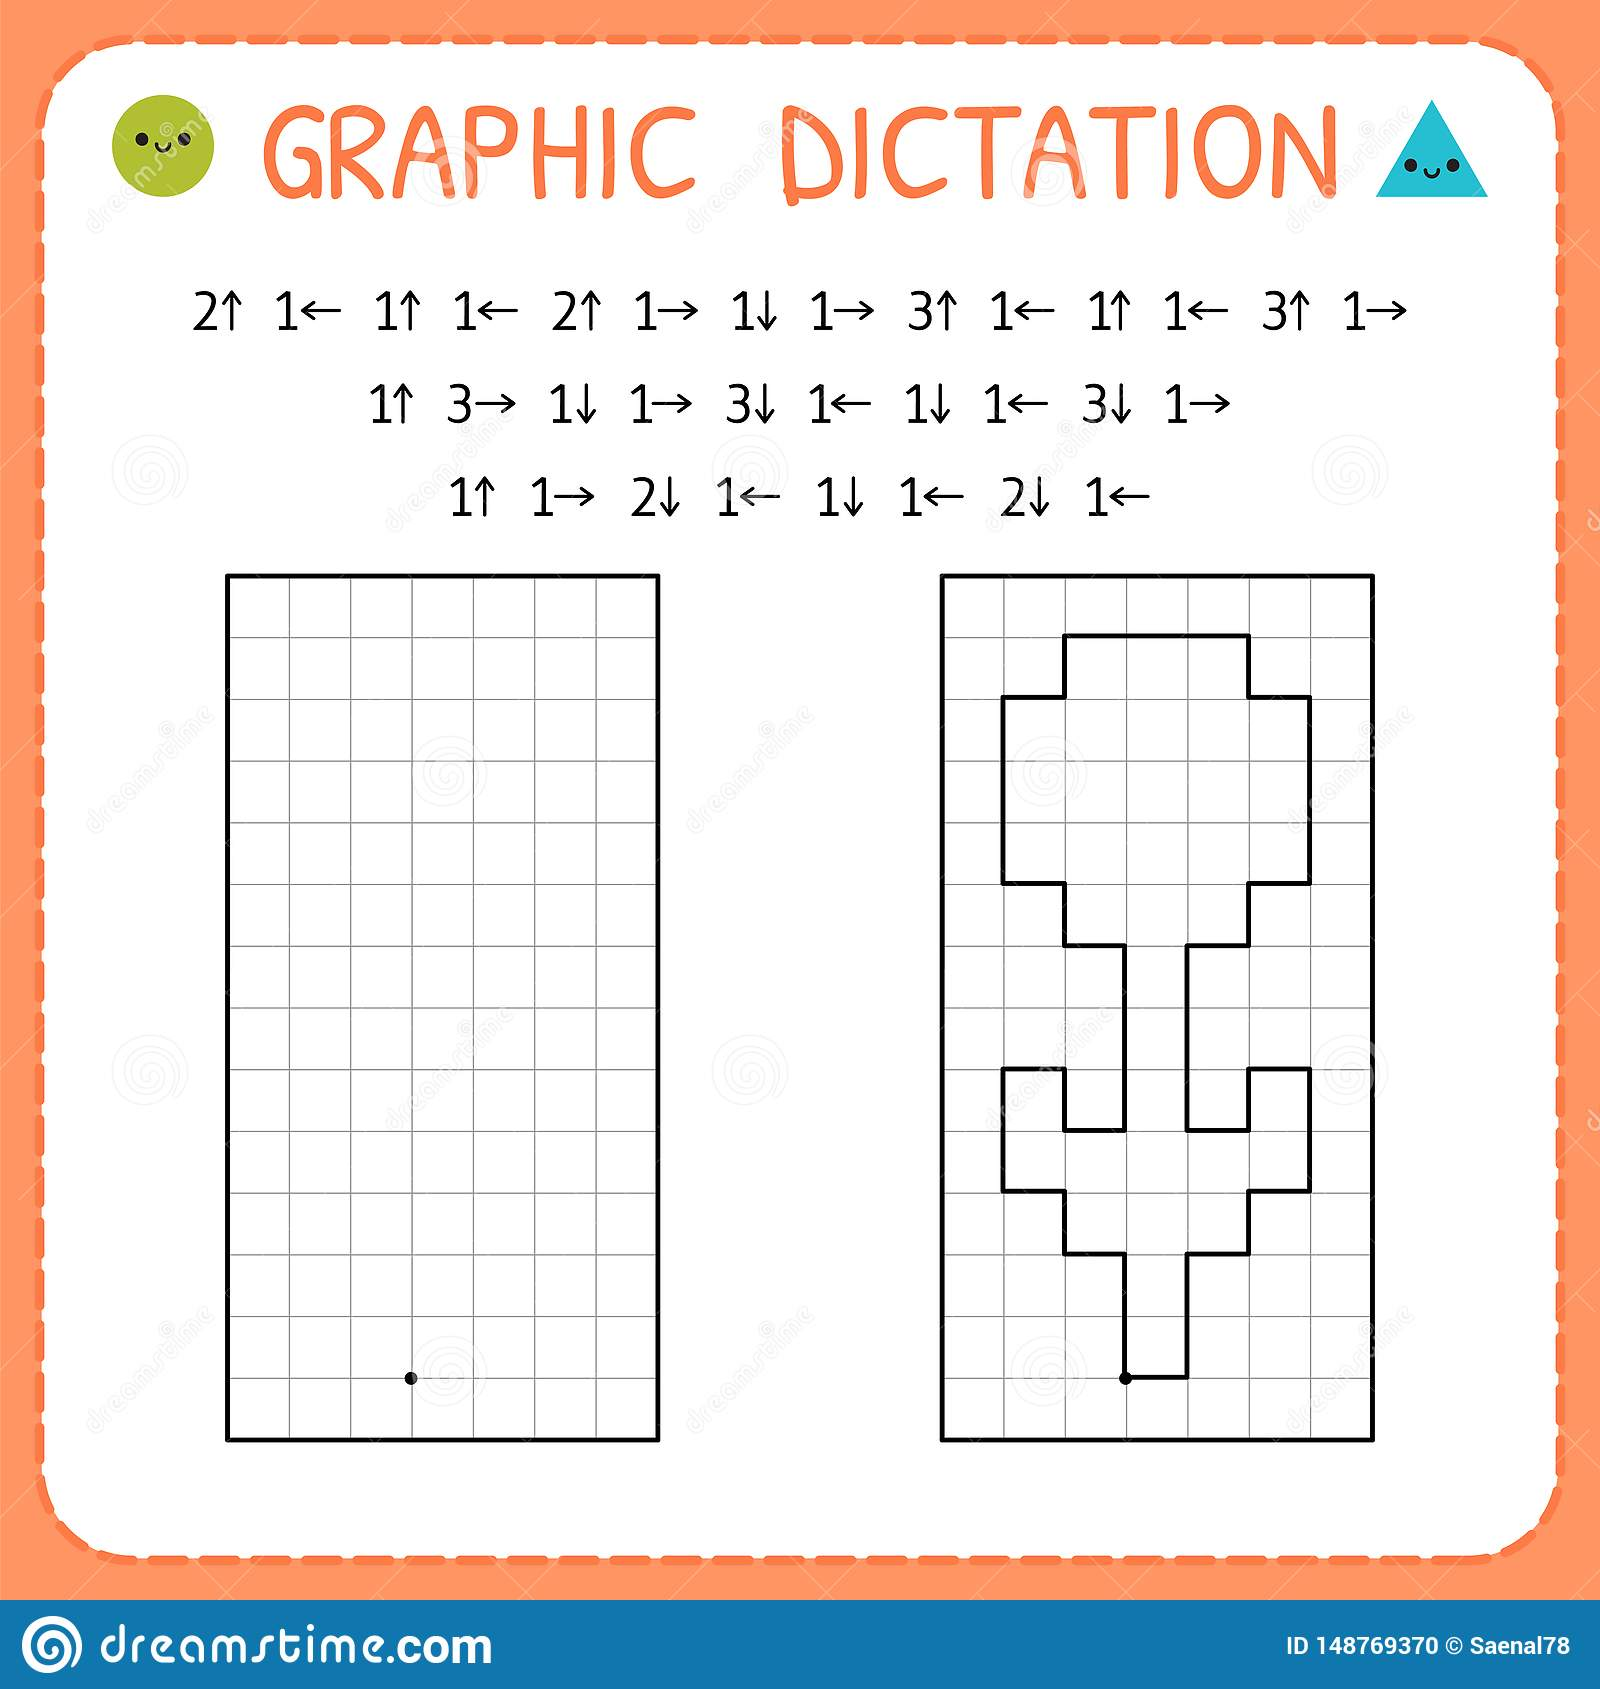 Graphic Dictation Flower Kindergarten Educational Game